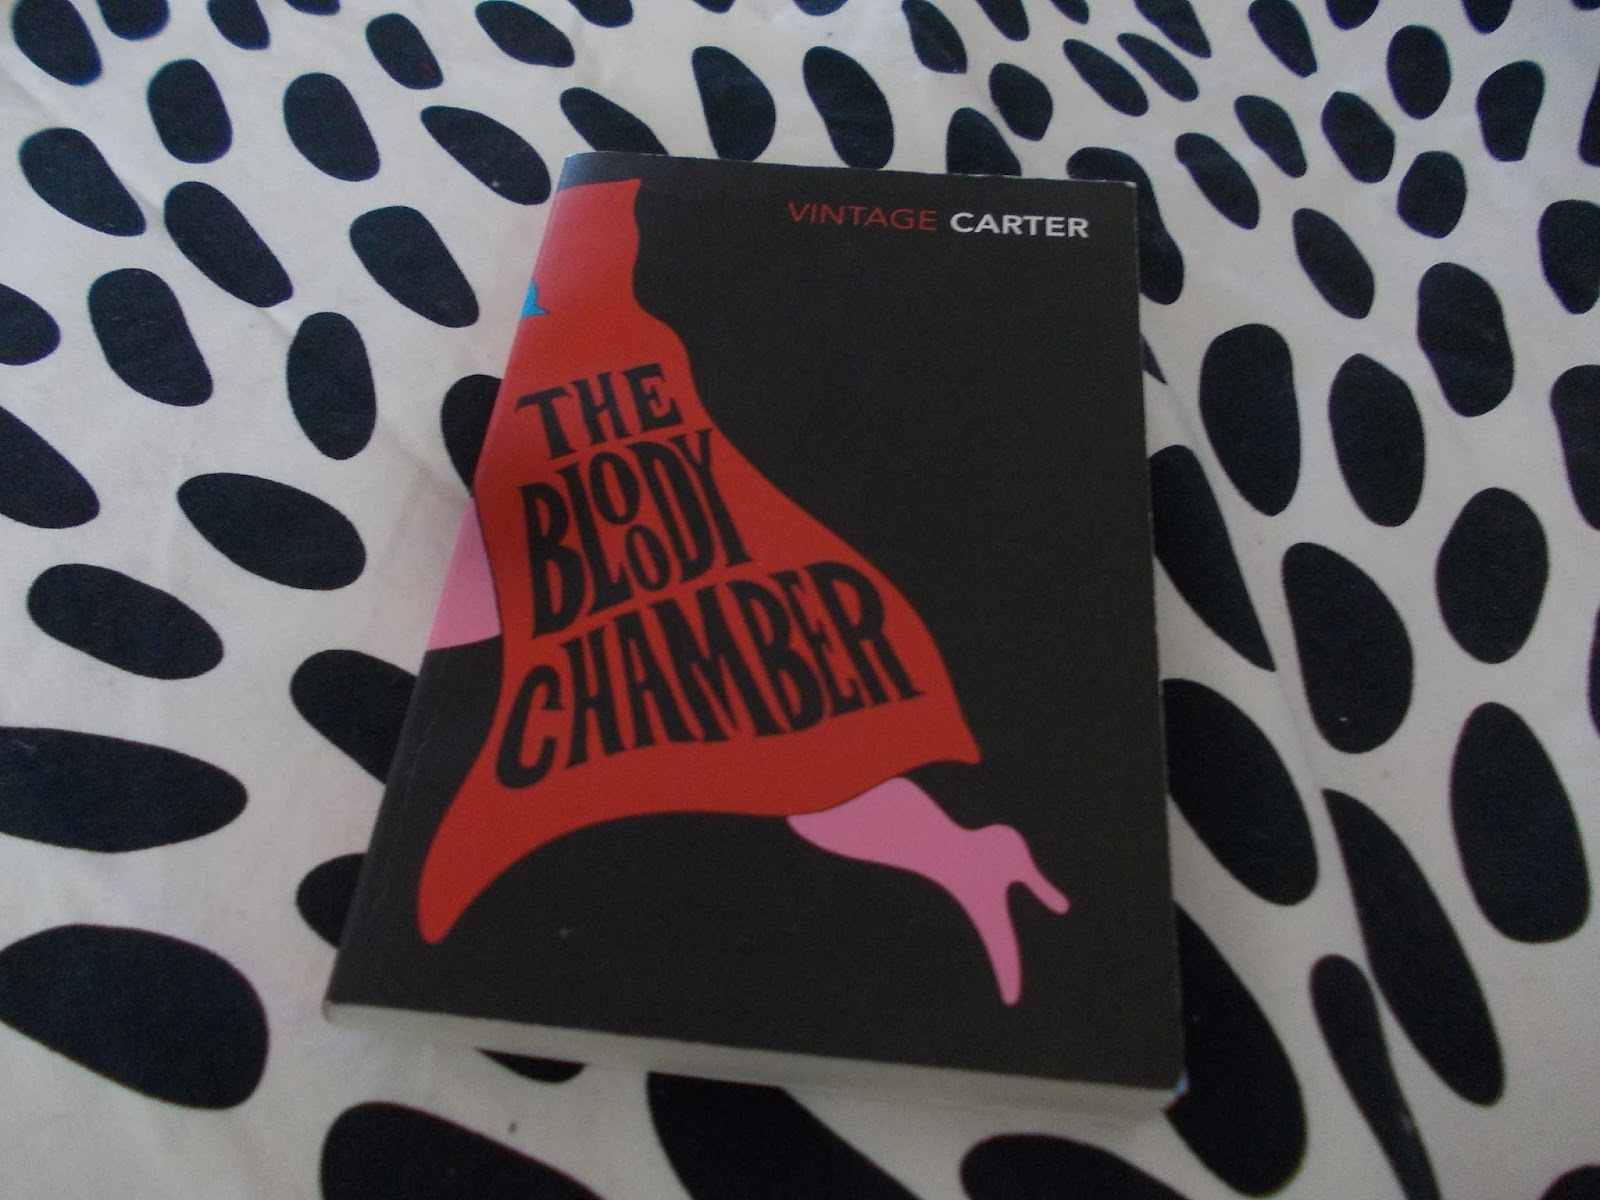 bidisha angela carter s 1979 collection of original fairytales the bloody chamber is rightly celebrated as a masterpiece of 20th century fiction